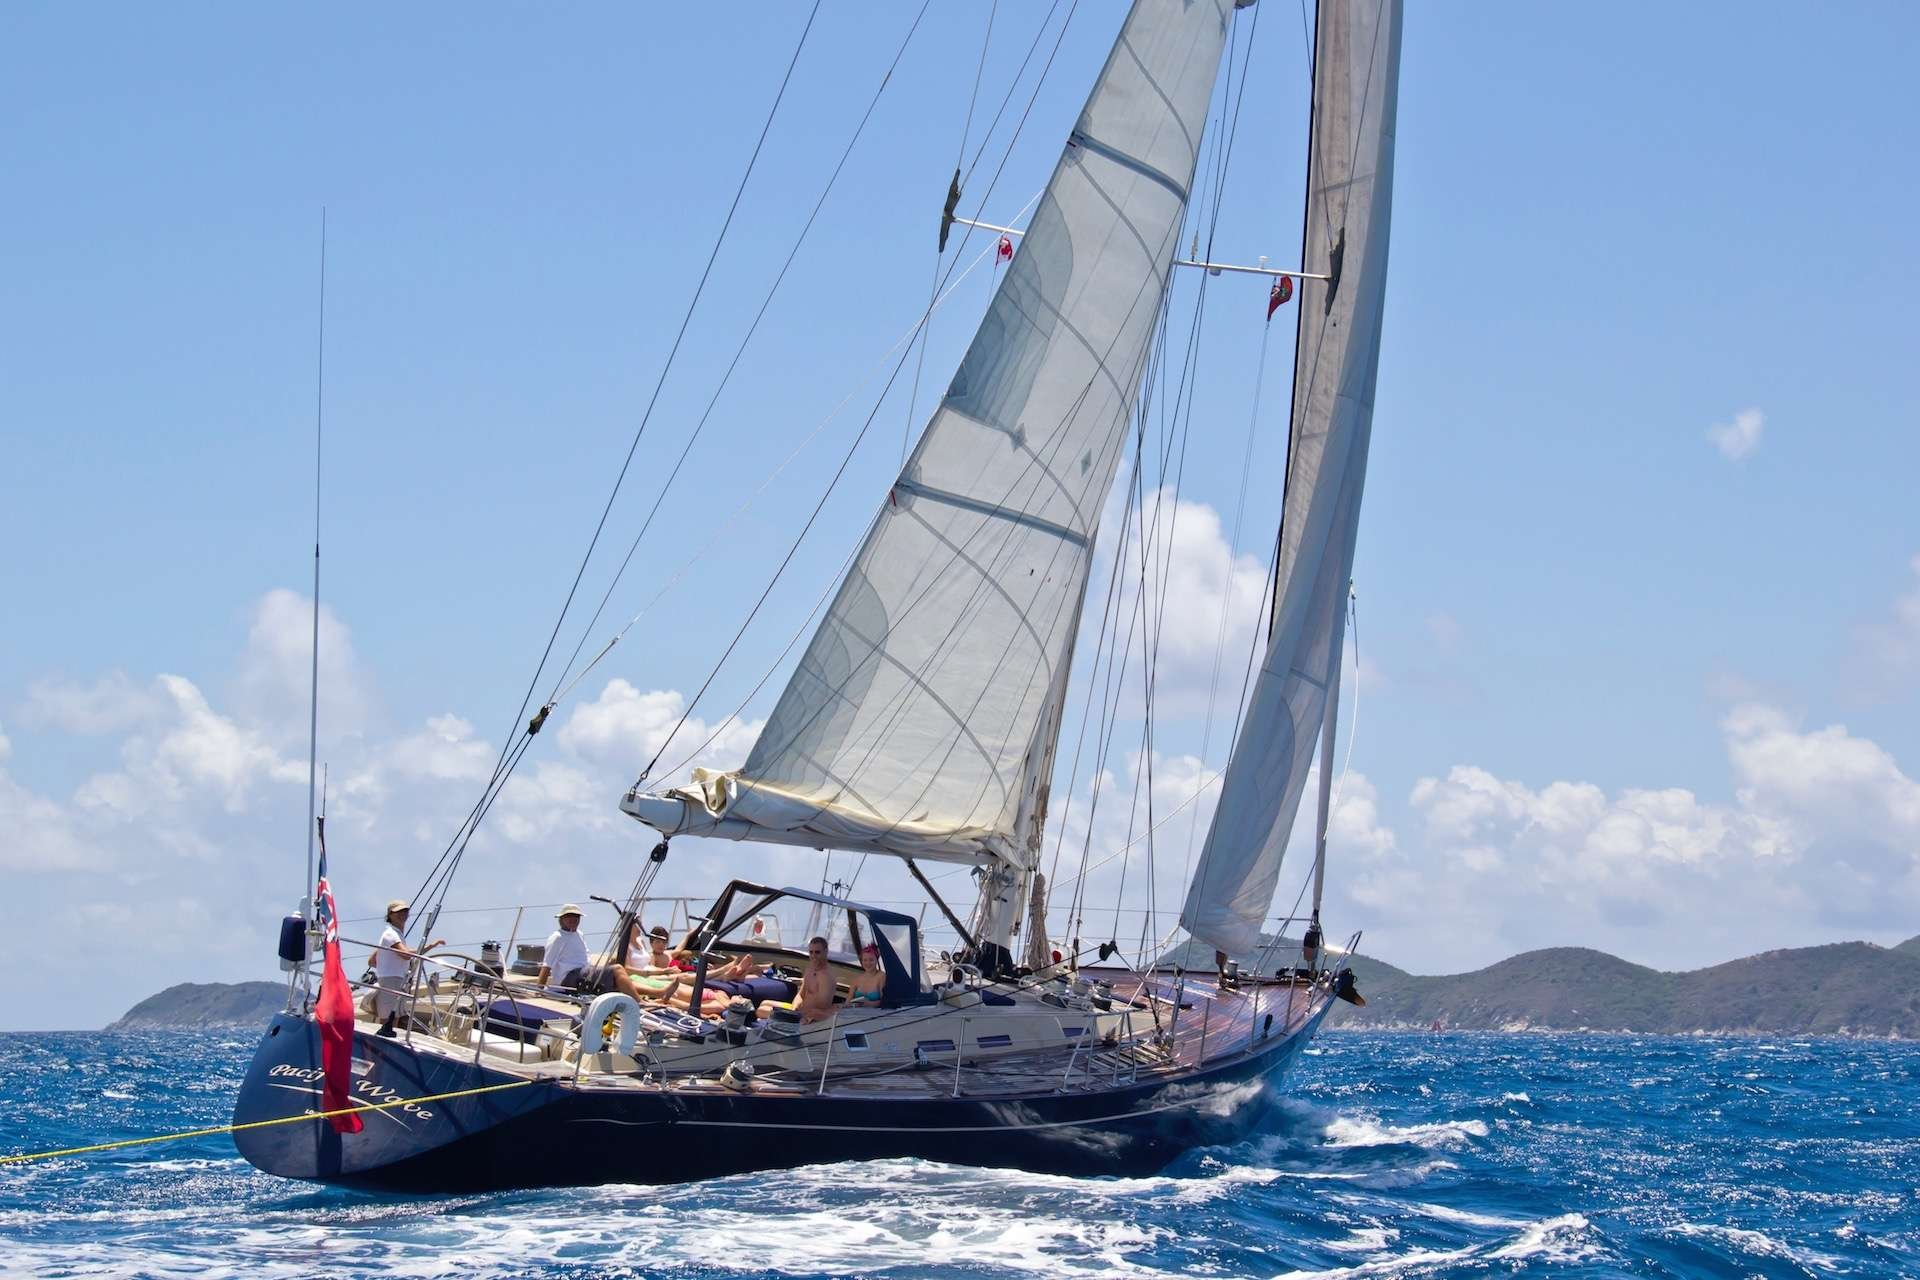 Sailing Yacht 'PACIFIC WAVE', 6 PAX, 2 Crew, 72.00 Ft, 21.00 Meters, Built 1986, Giorgetti & Magrini/Yacht Officine Pesaro SRL, Refit Year Full Refit 2015